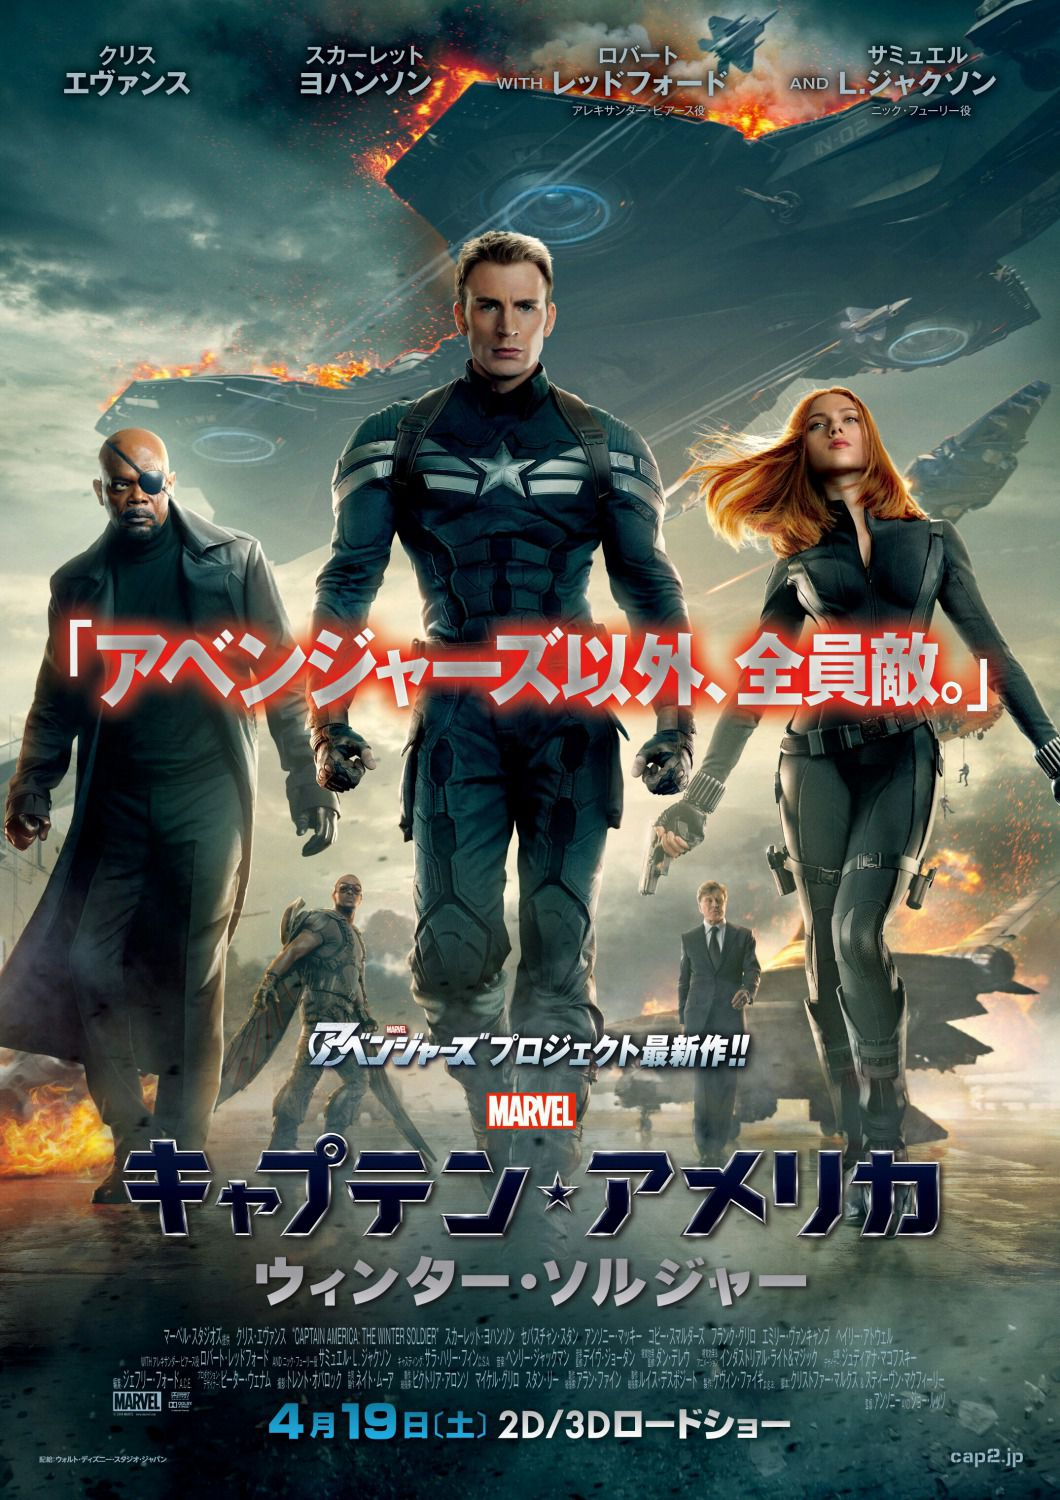 Film - Captain America 2 - the Winter Soldier - Capitan America - poster